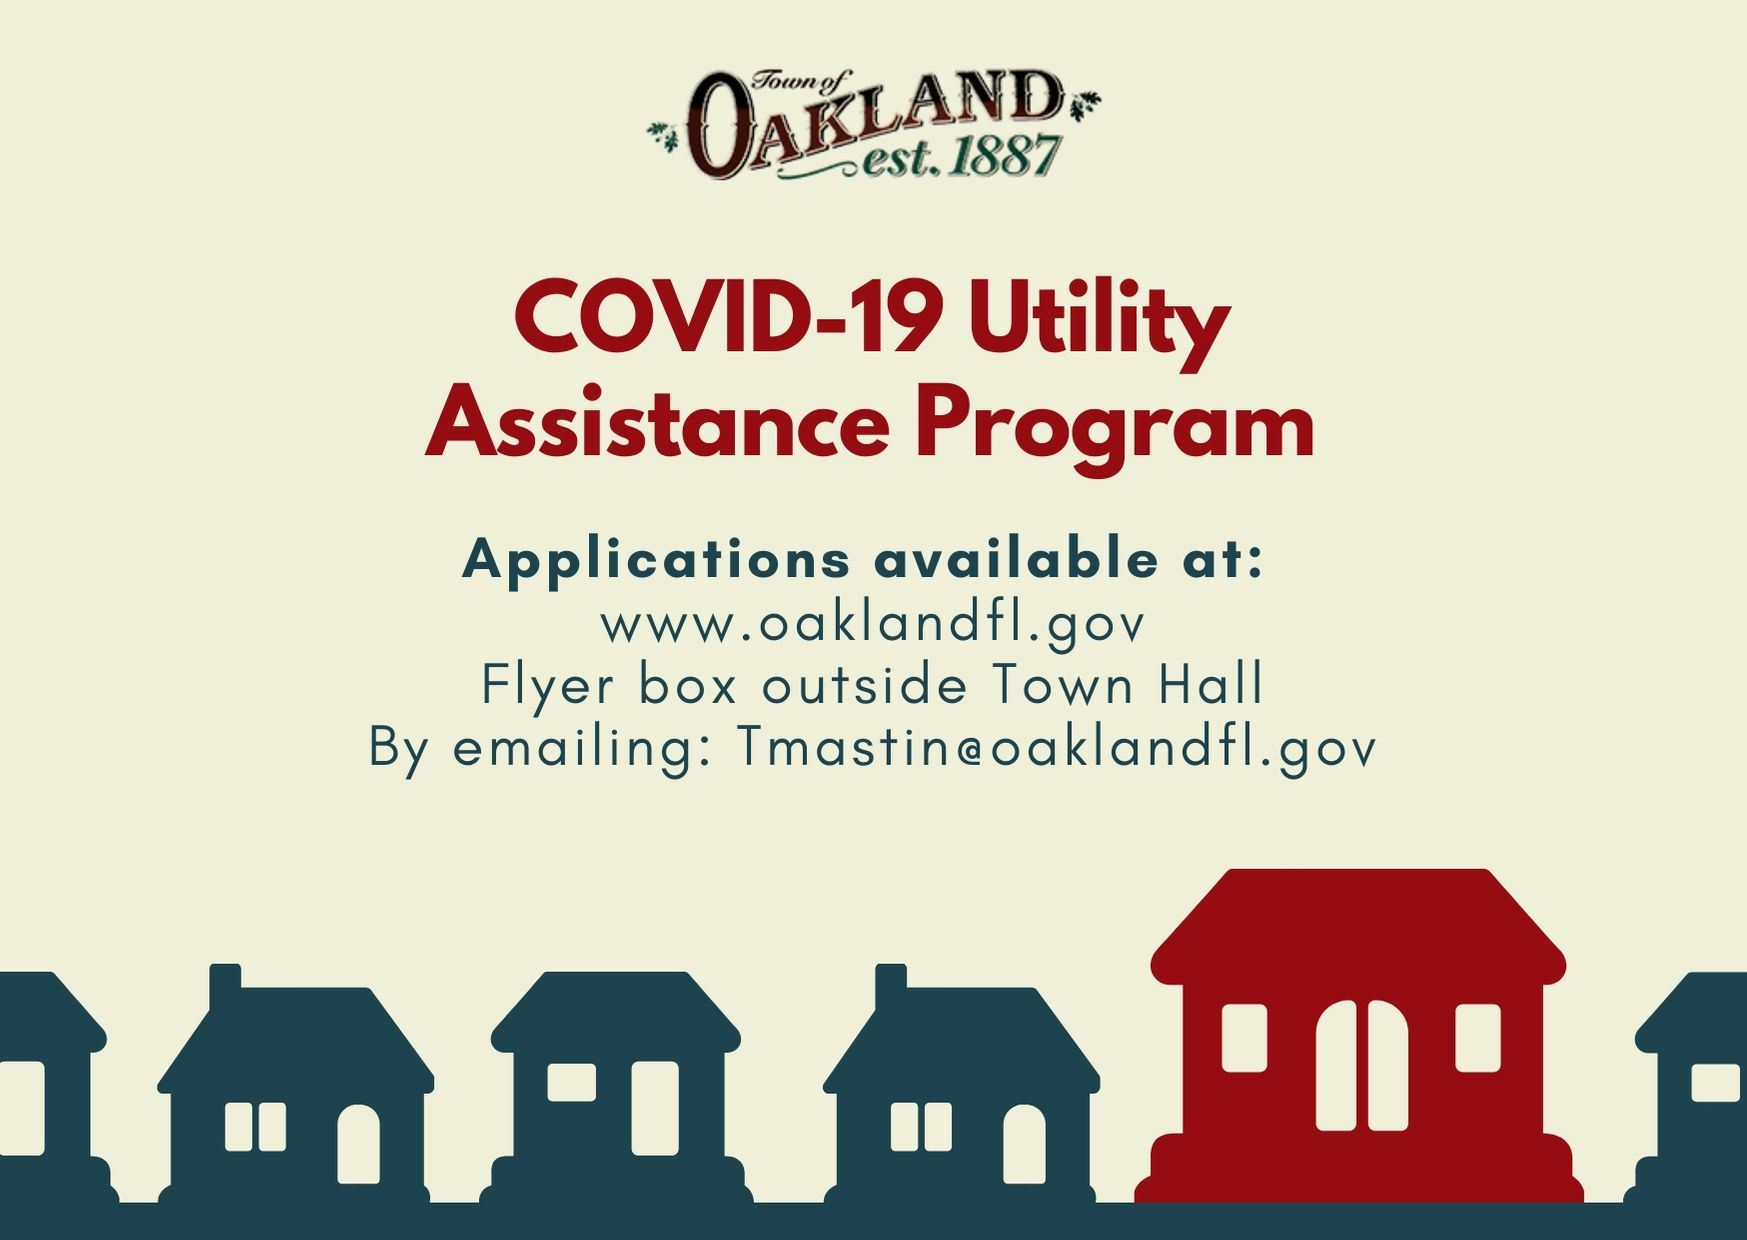 COVID-19 Utility Assistance Program